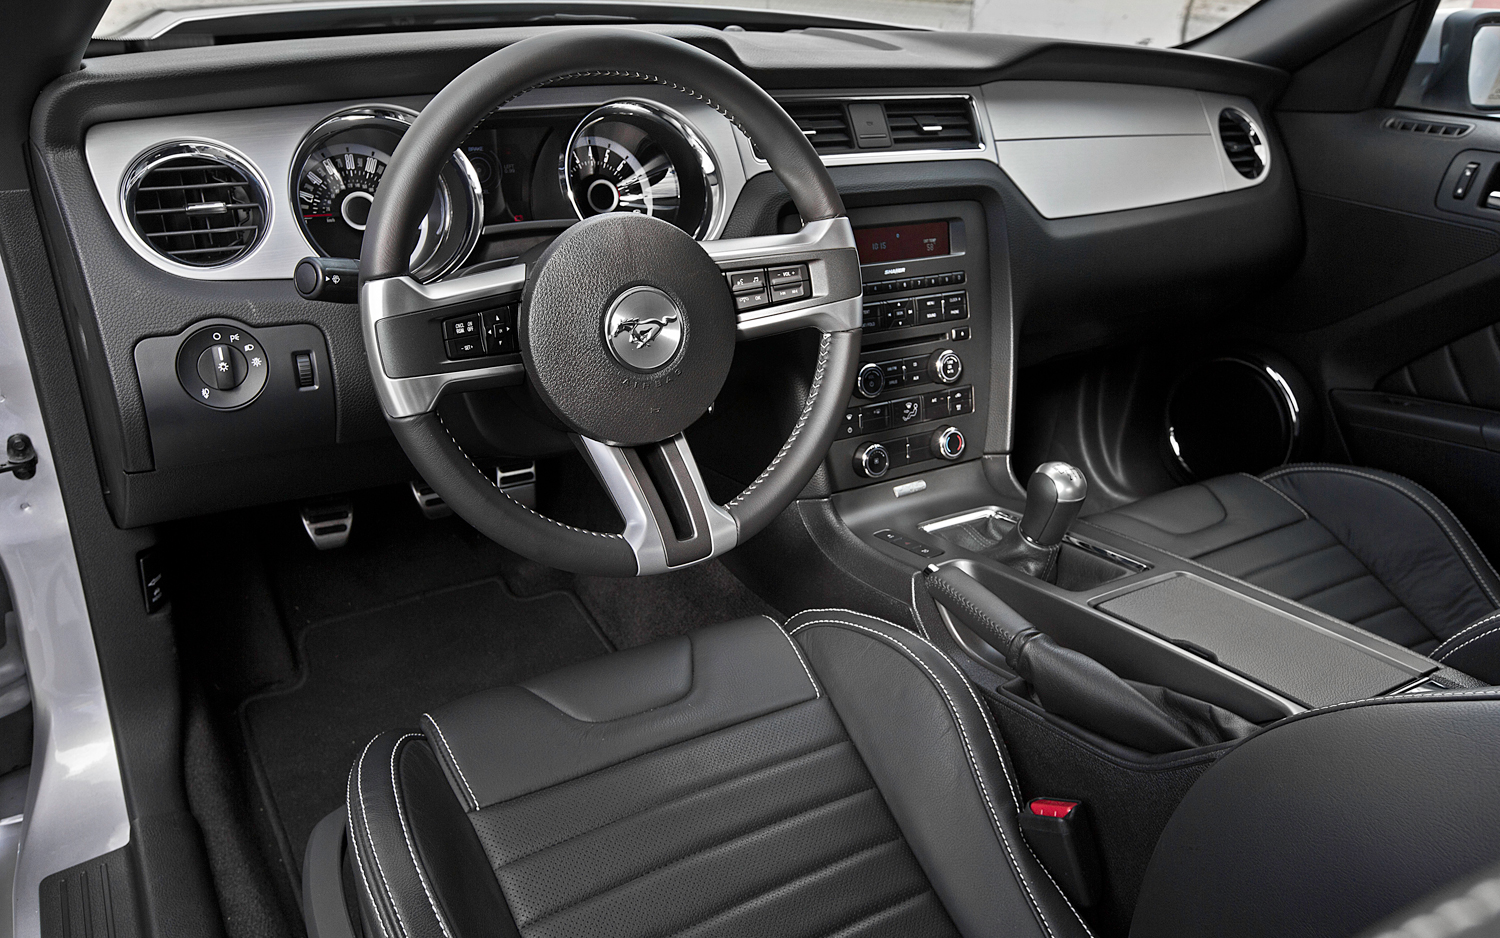 Click image for larger version  Name:Mustang Dash.jpg Views:1471 Size:979.2 KB ID:151495